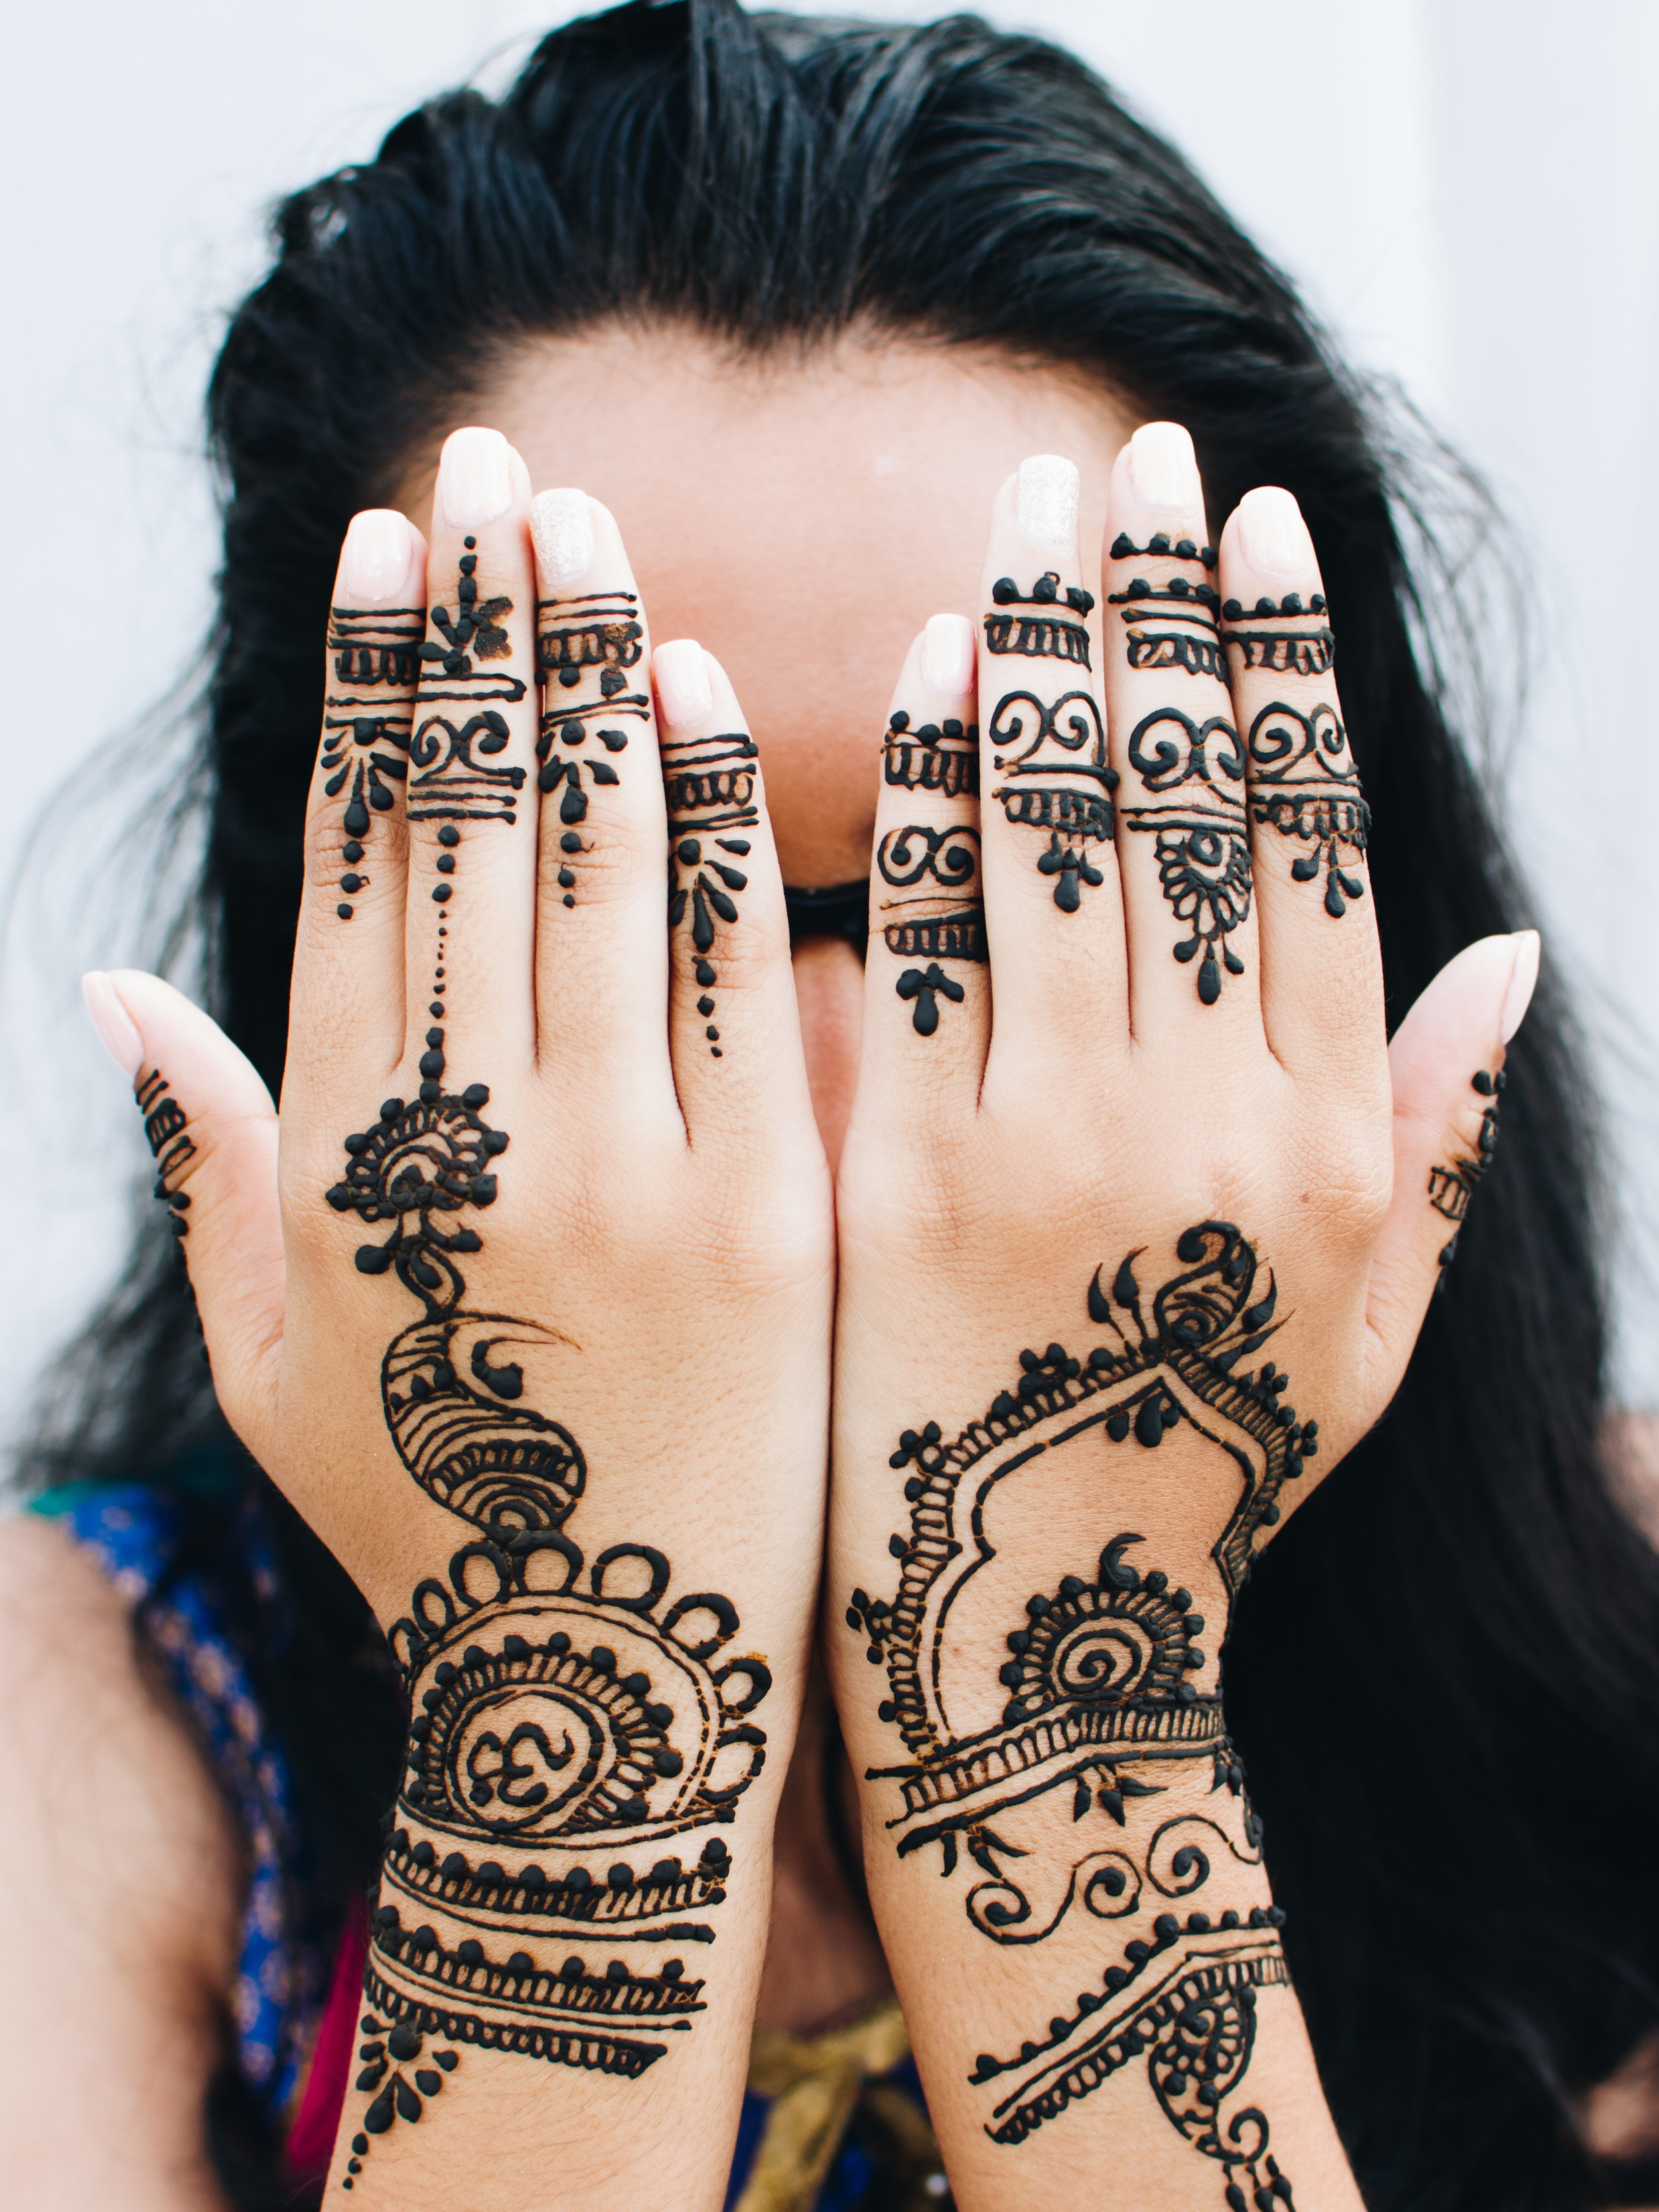 Henna - Thank you to to Zabiha Halal for sponsoring complimentary henna at the market at the below times. Our local artists are: Samira, Sumaiya, Reem, Safia, Joveria, and Mrjaan.Thursday August 8th10 am–1pm & 5 pm–9 pmFriday August 9th10 am–1pm & 3 pm–9 pmSaturday August 10th12:30–9 pmSunday August 11th11 am–7 pm